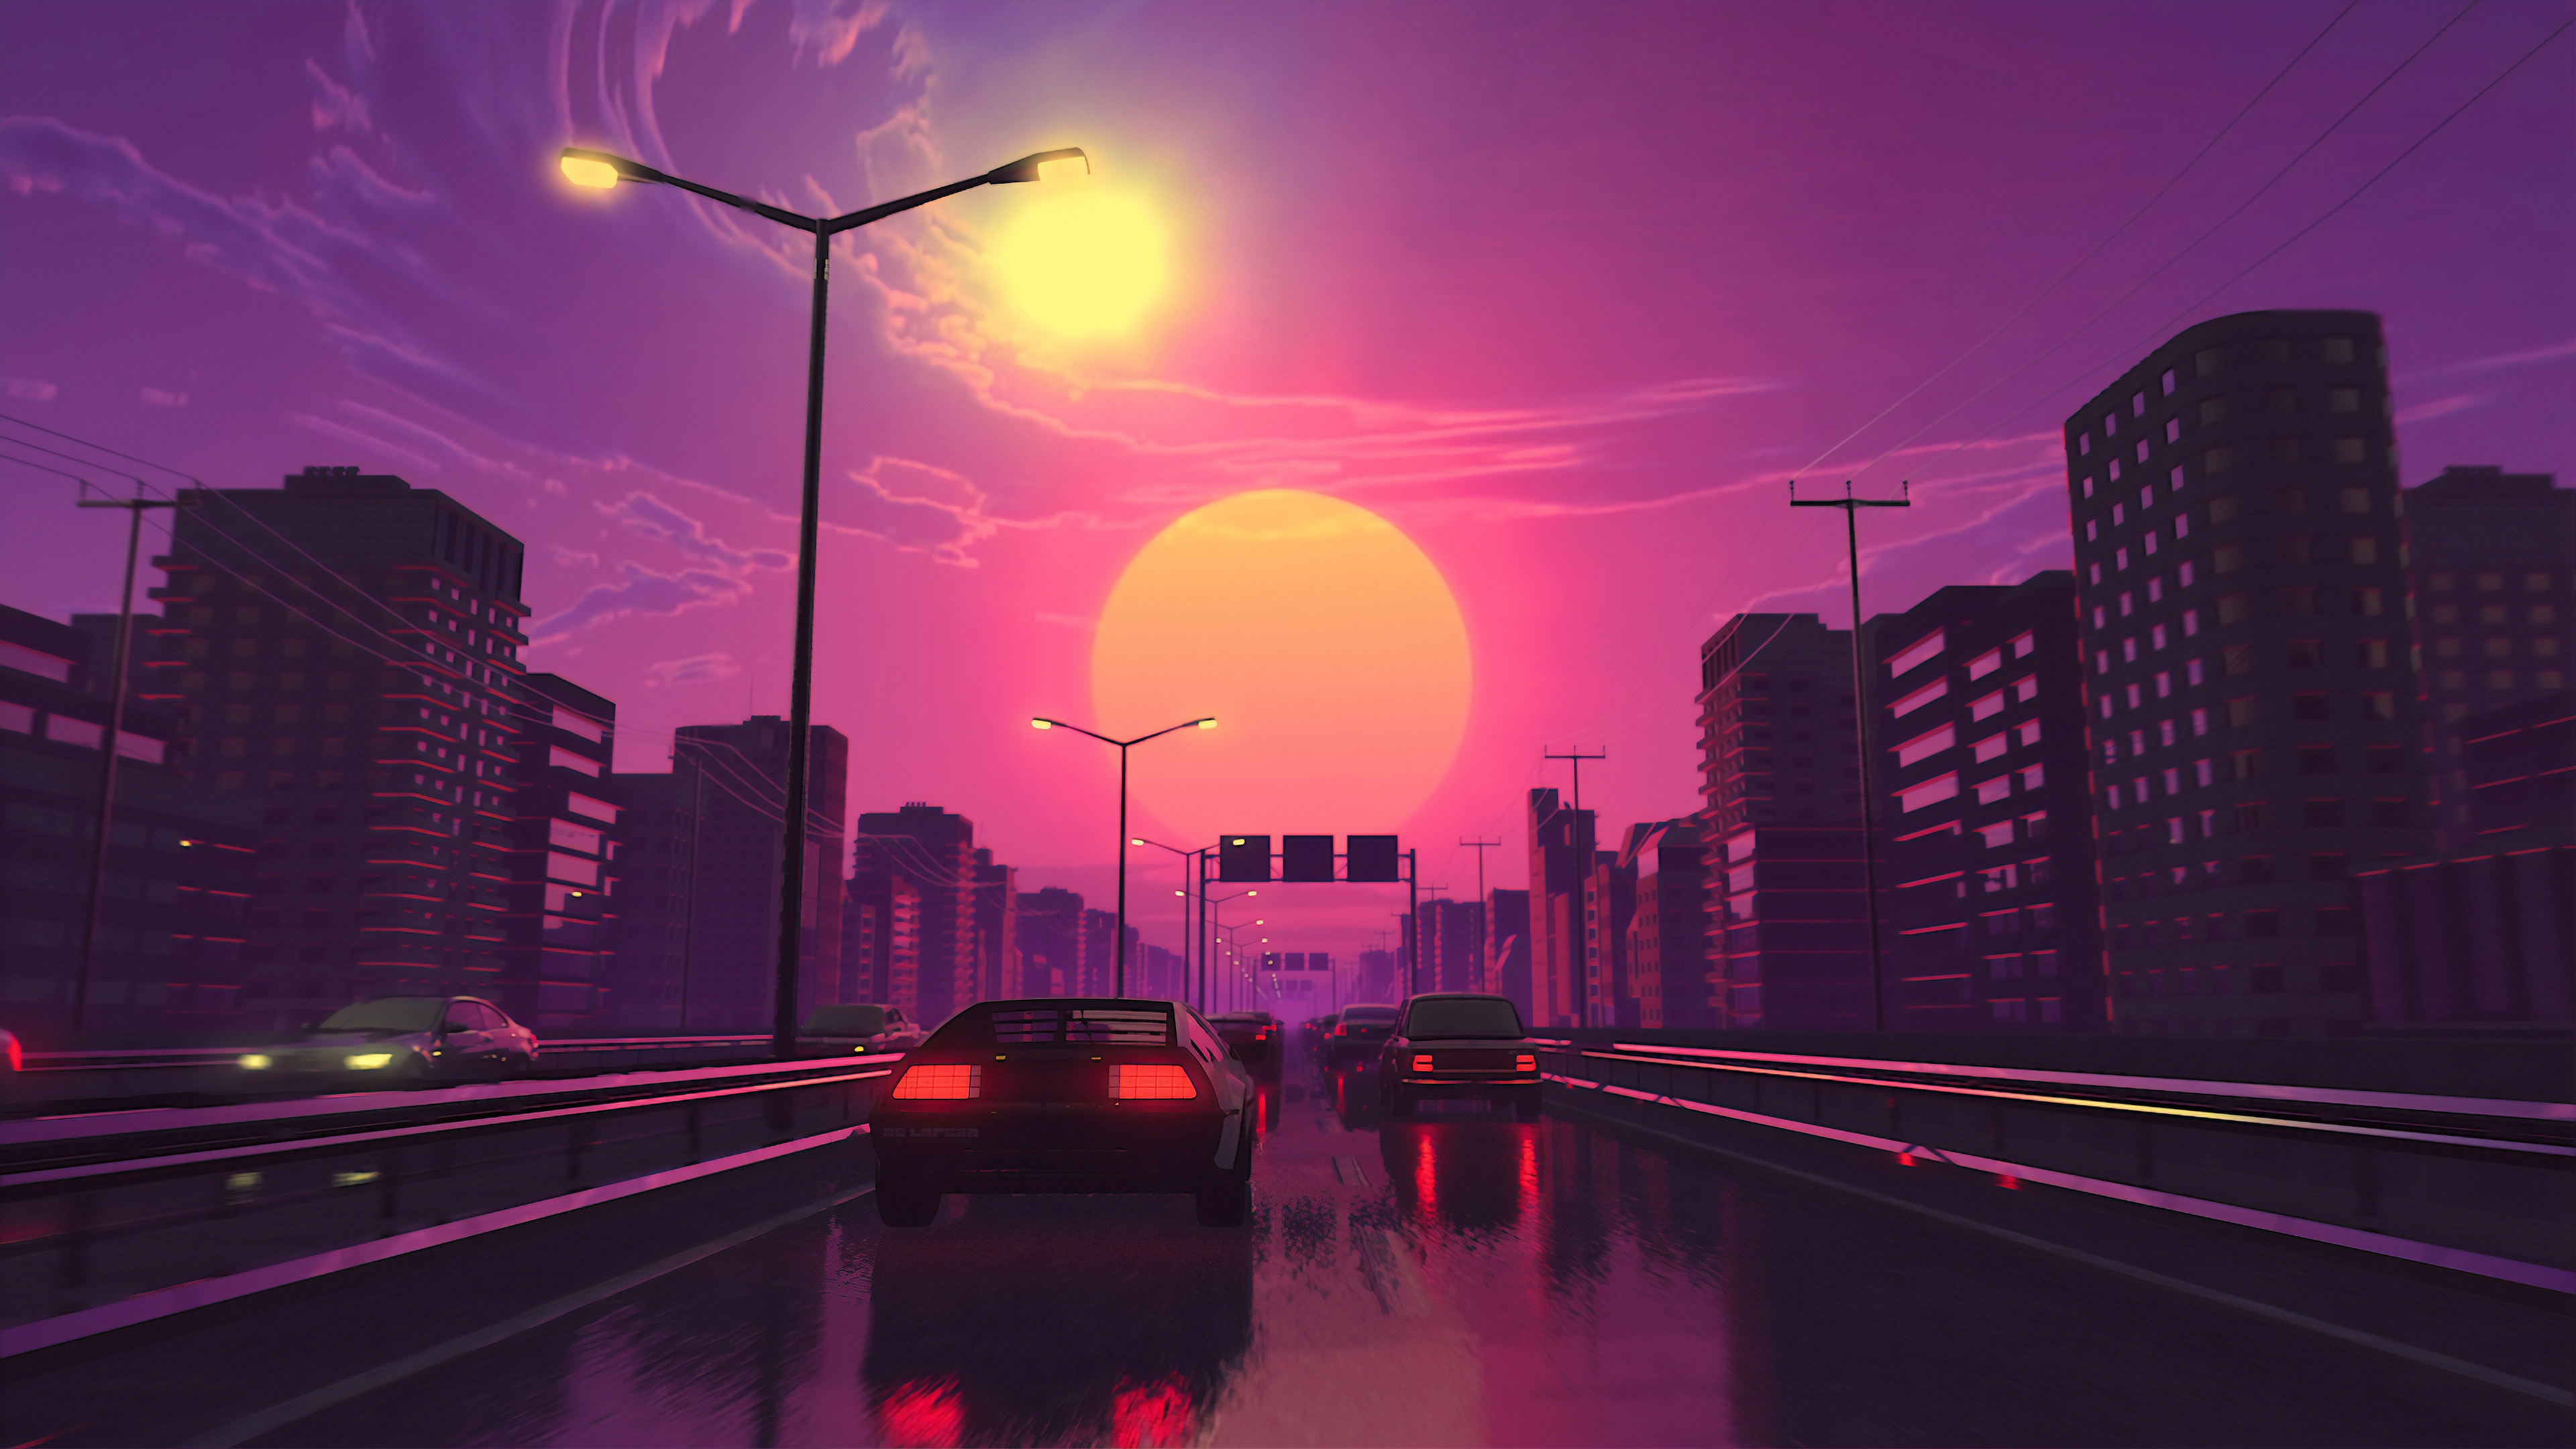 General 3840x2160 digital digital art artwork city lights street car vehicle transport synthwave street light urban modern landscape cityscape architecture building vaporwave Sun dusk sunset sky skyscape cyberpunk